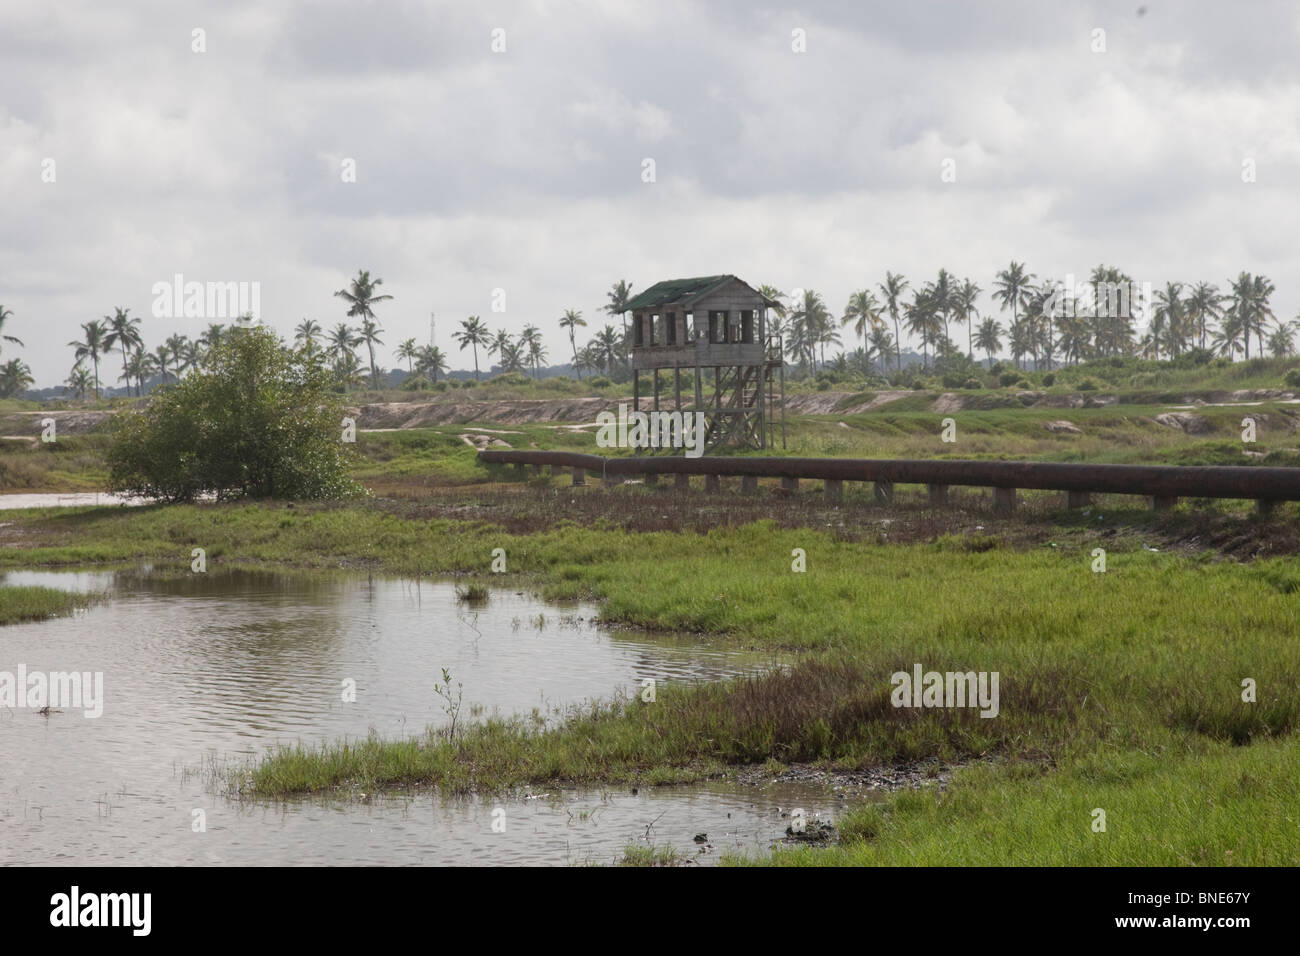 Pipeline carrying seawater into pans in the Muni lagoon, near Winneba, Ghana, for the production of salt. - Stock Image